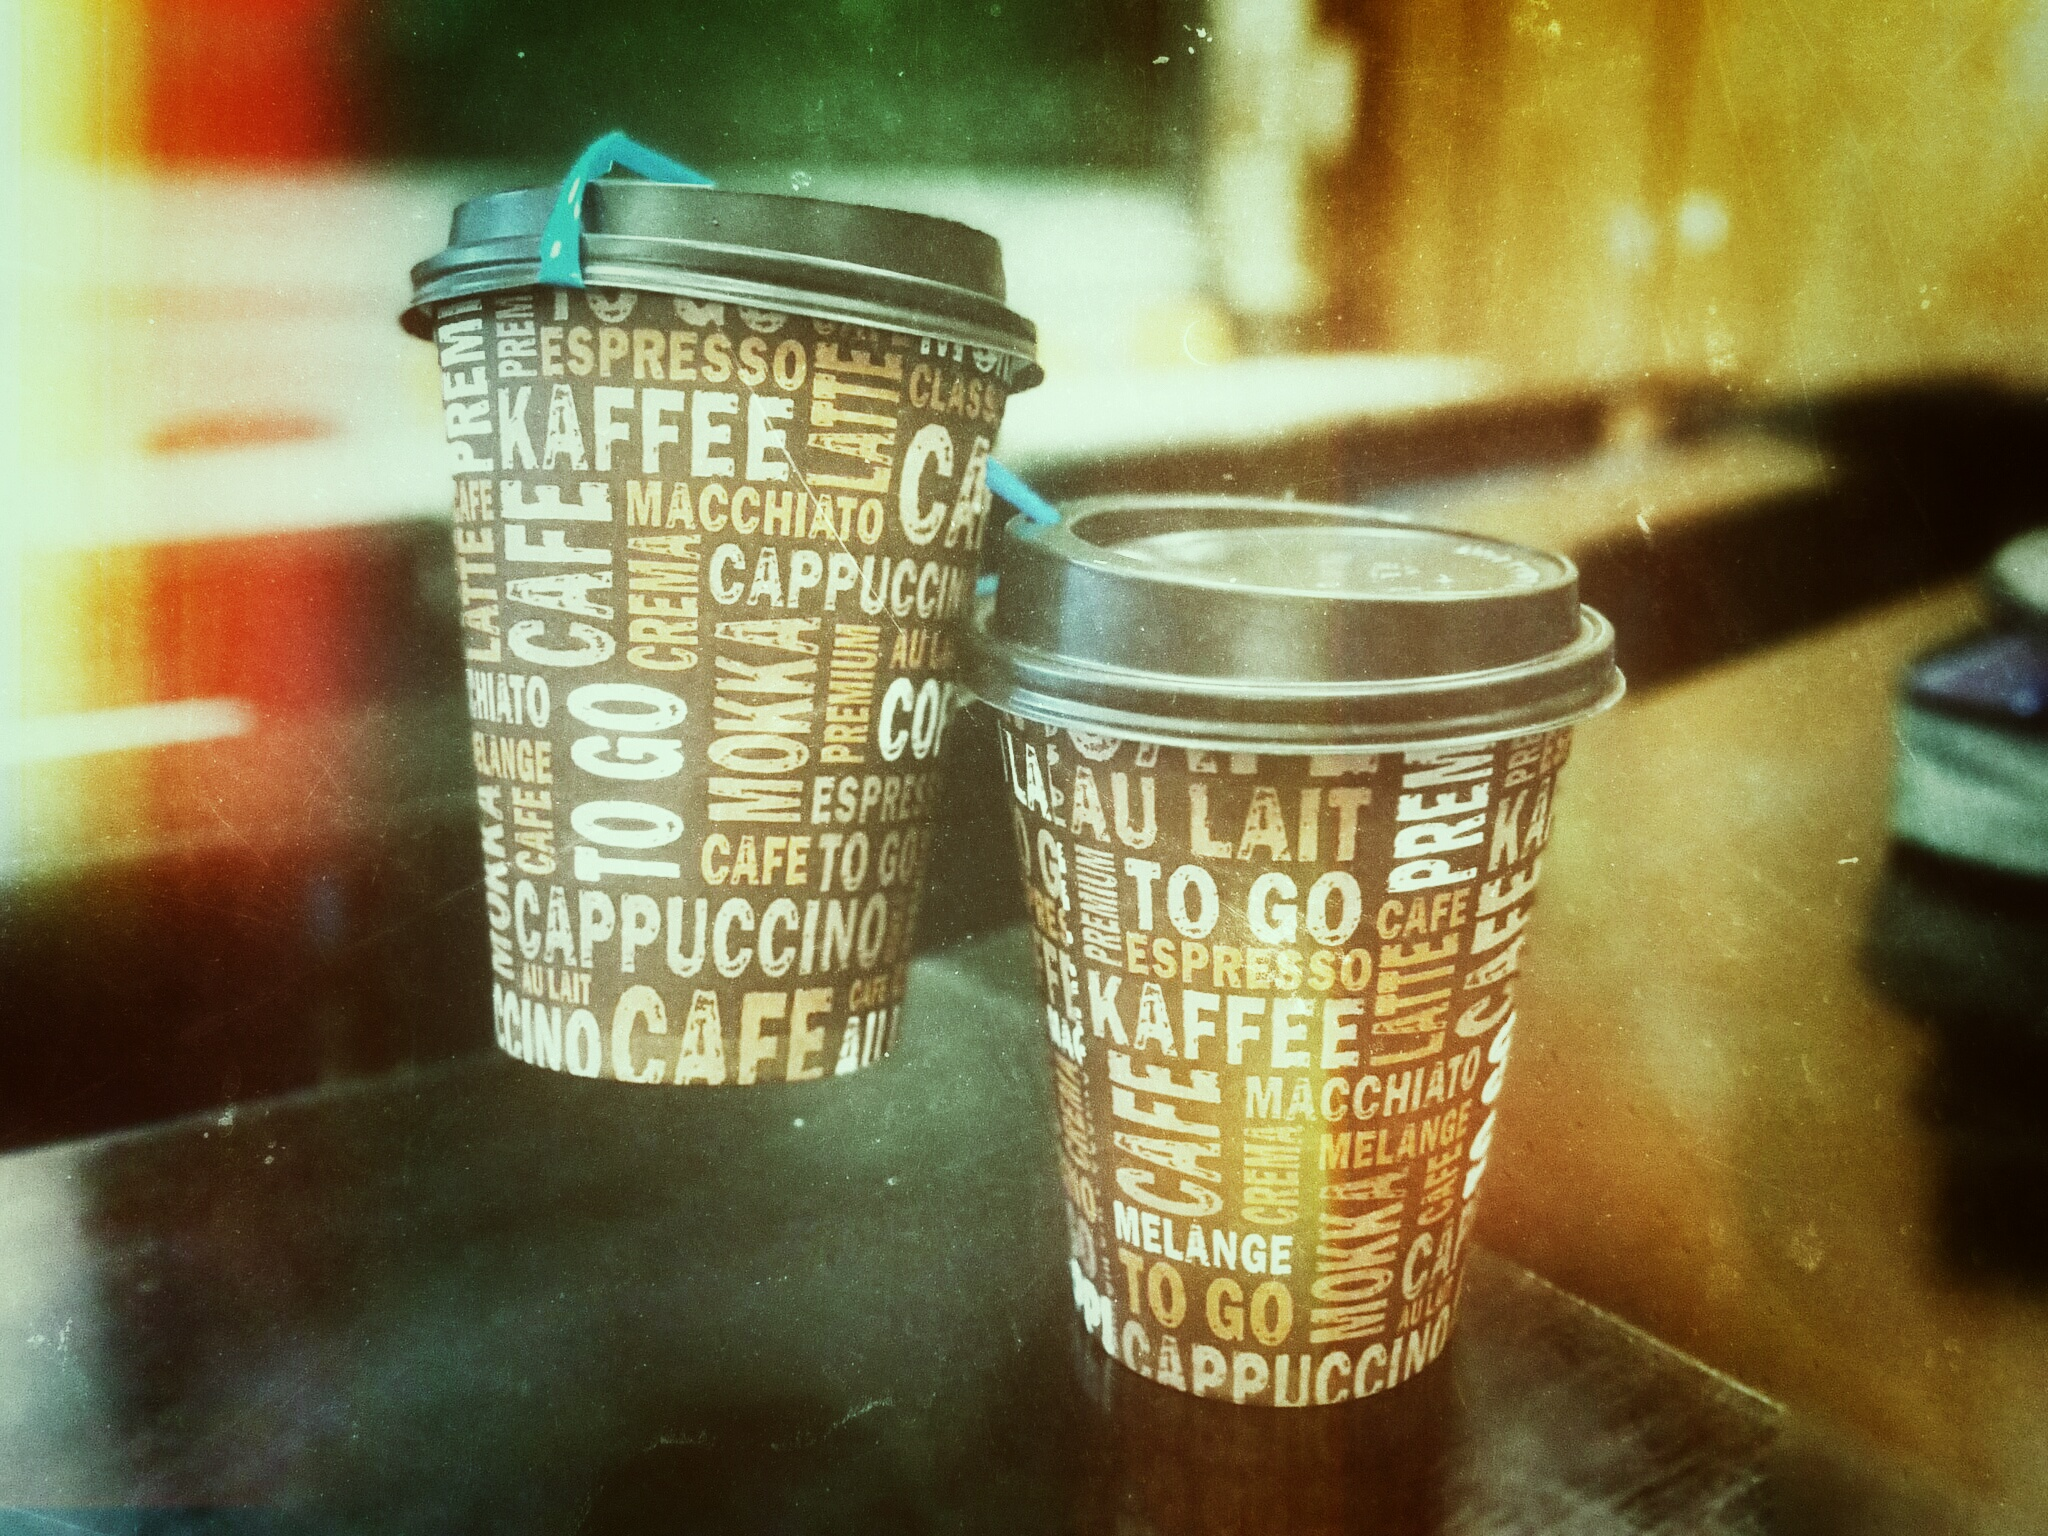 Artistic image of two paper coffee mugs. One of them is lifted above the other with help of a blue straw.